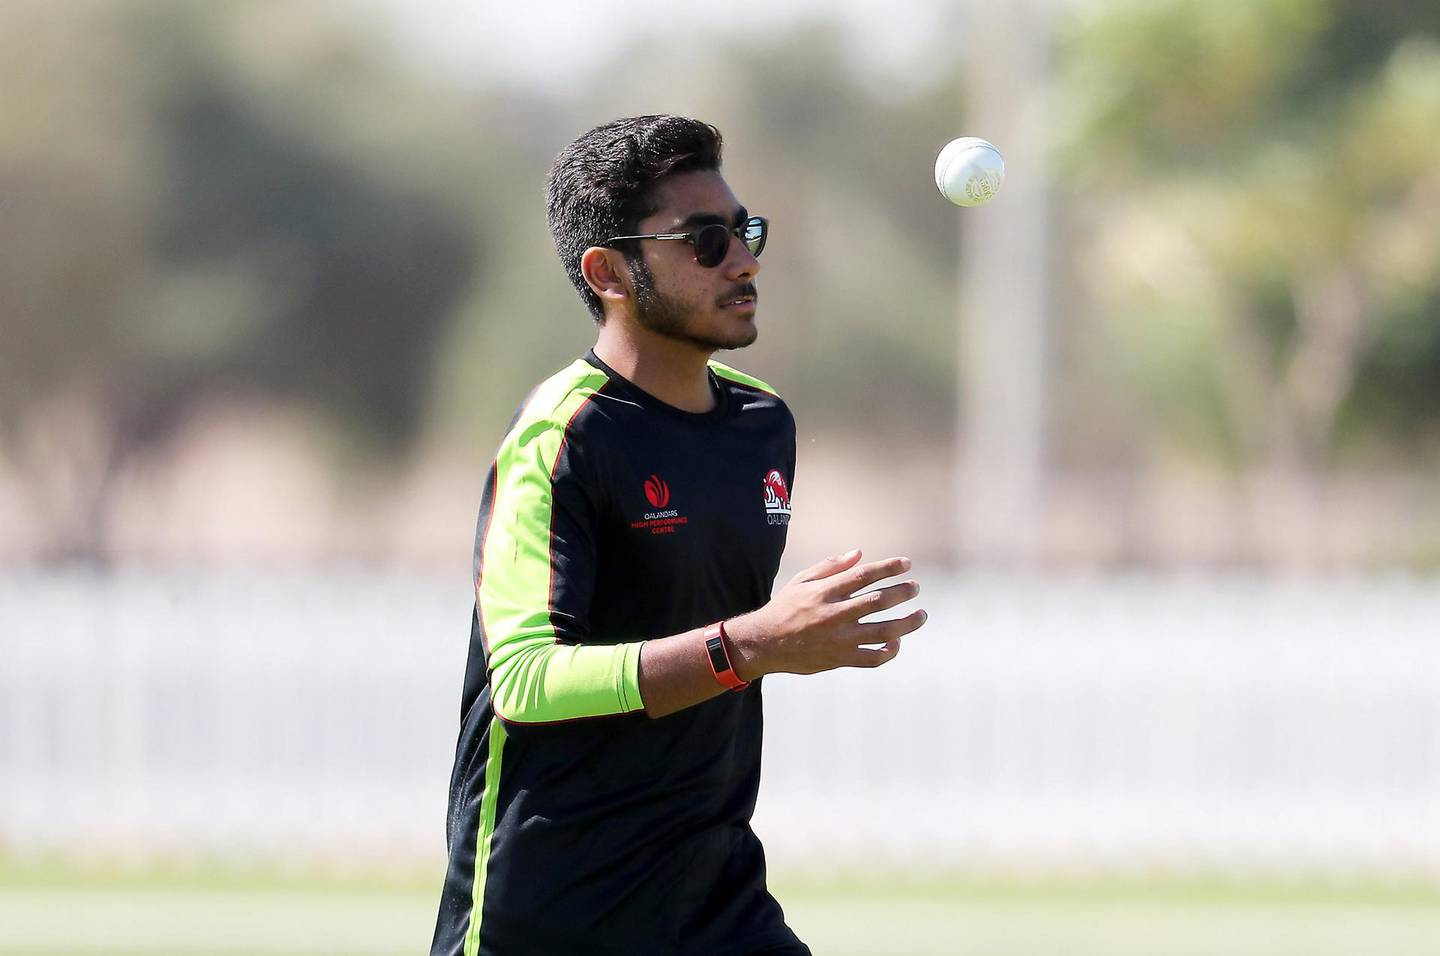 ABU DHABI, UNITED ARAB EMIRATES , Nov 13  – 2019 :- Hassan Khalid of Qalandars T10 cricket team during the training session held at Sheikh Zayed Cricket Stadium in Abu Dhabi. ( Pawan Singh / The National )  For Sports. Story by Paul